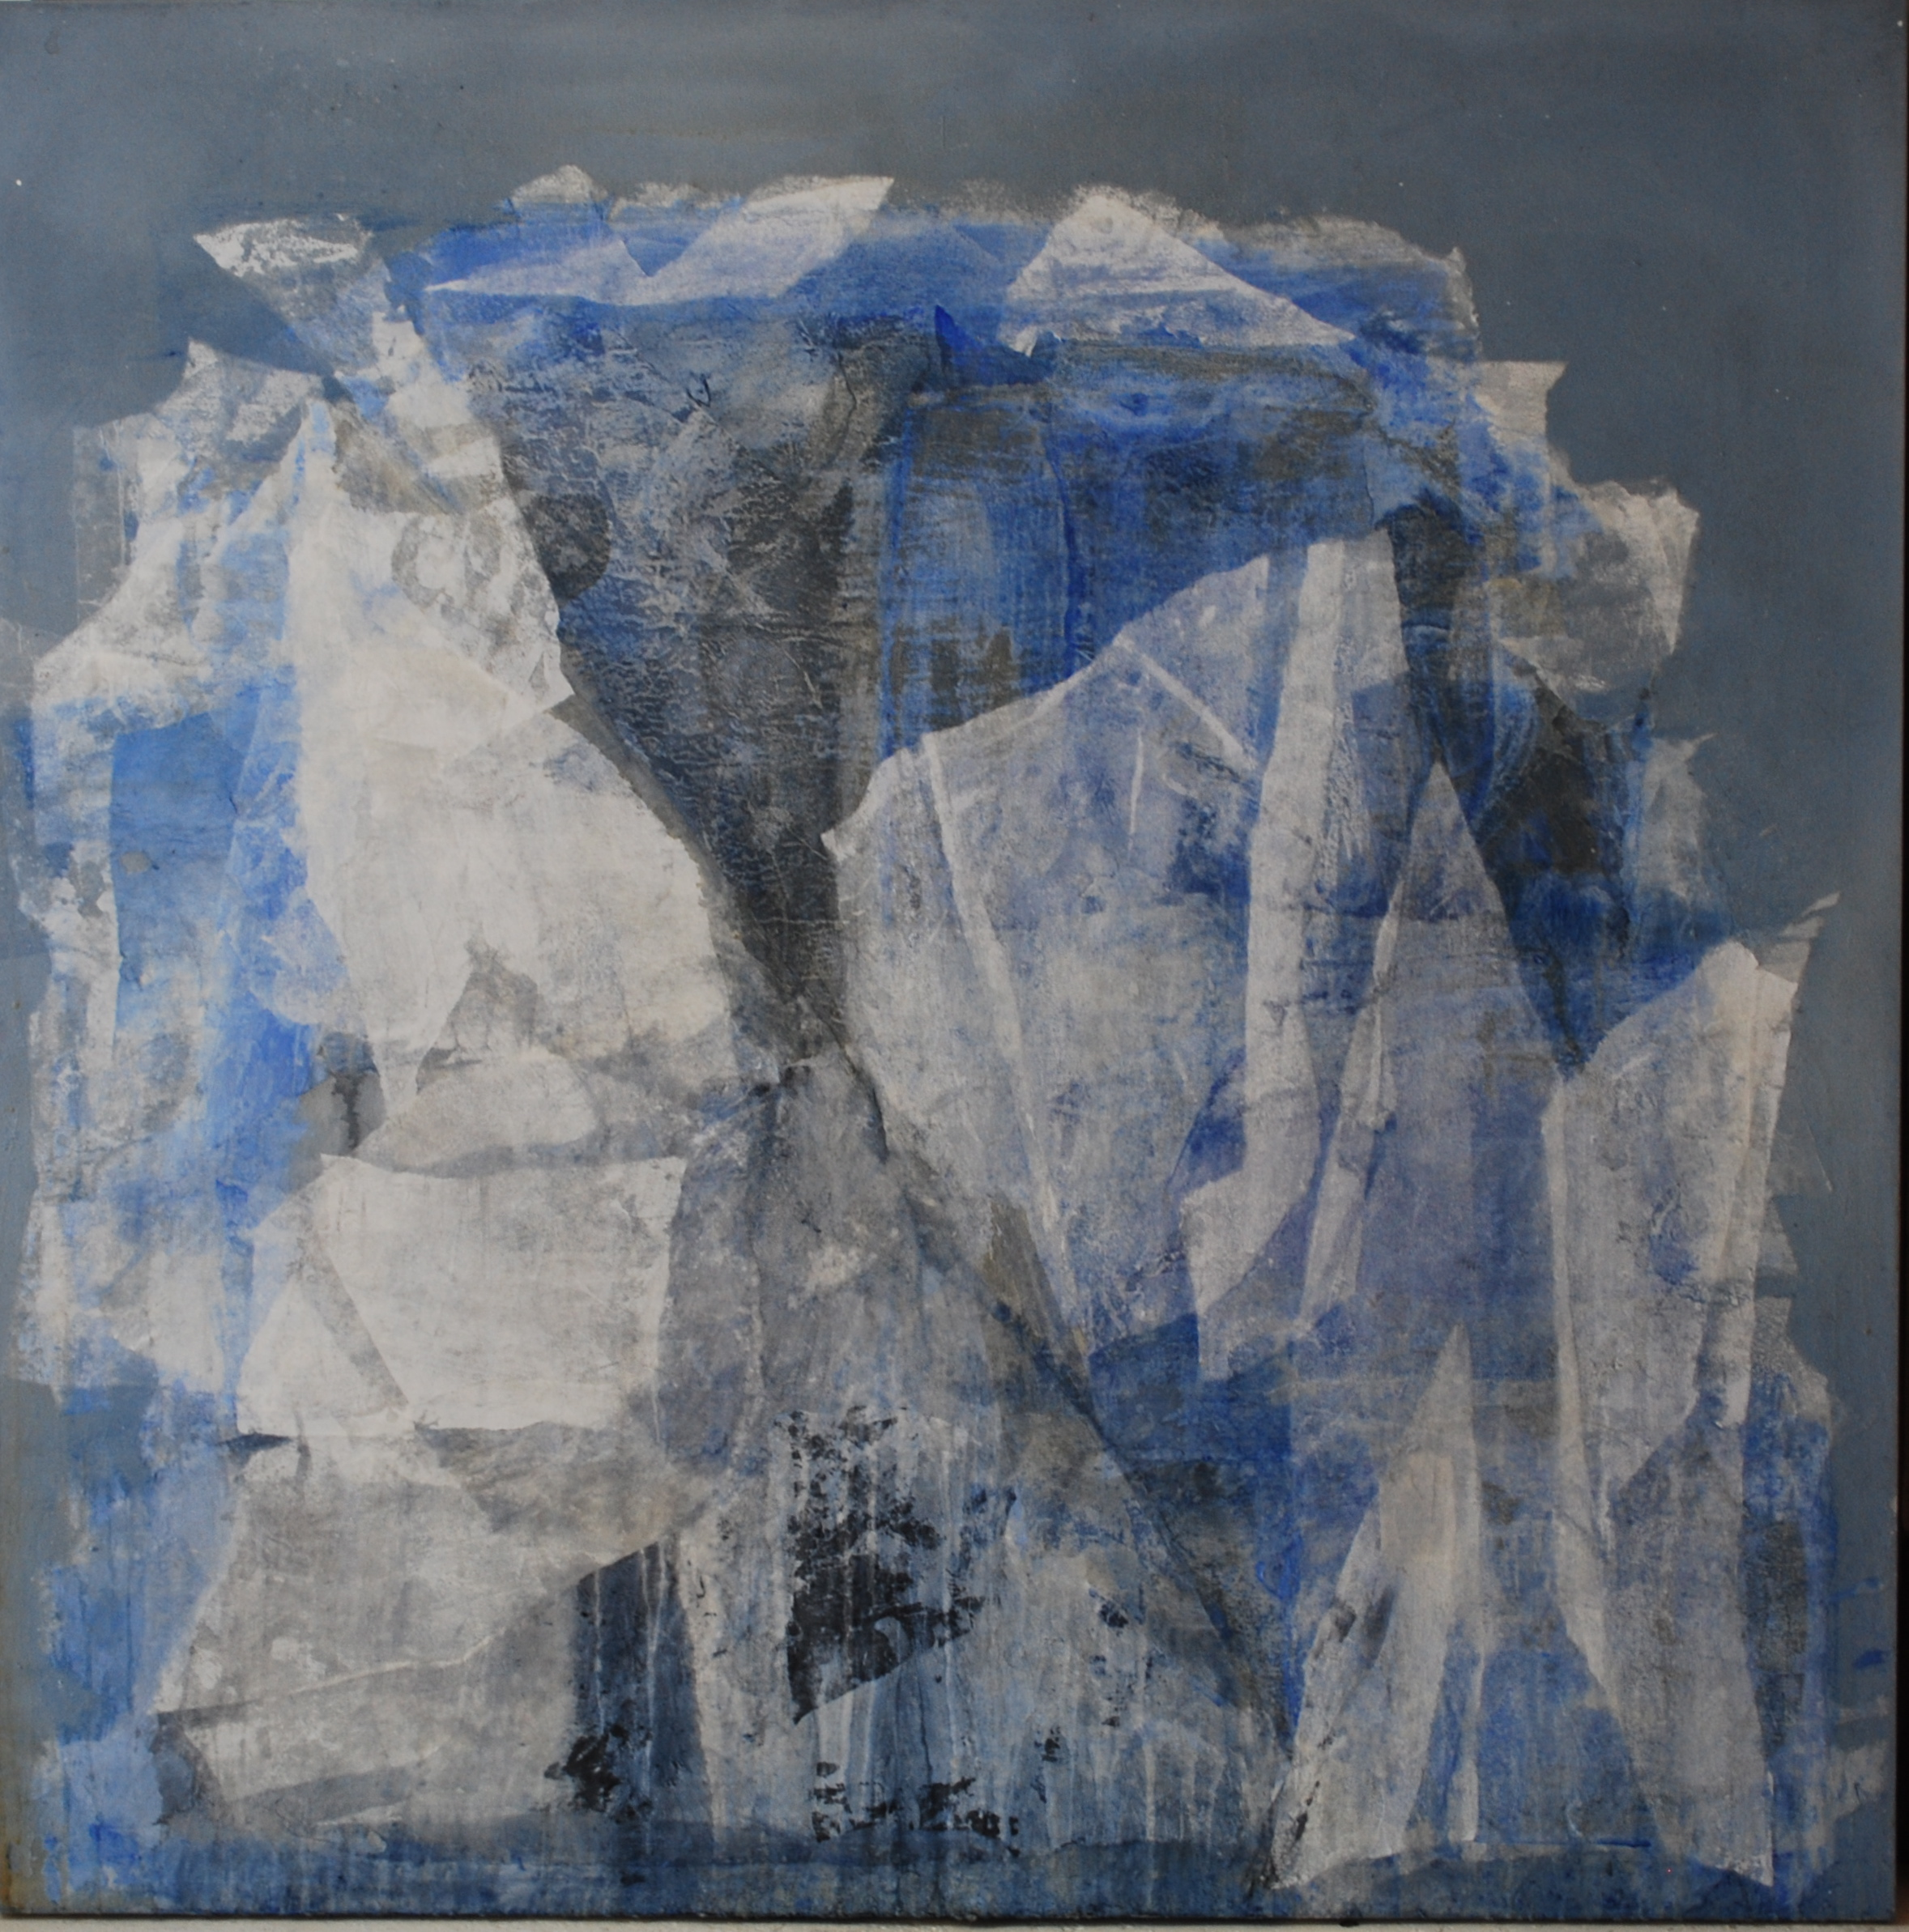 SoHyun Bae, Wrapped Shards #12, 2002, rice-paper and pure pigment on canvas, 60 x 60 inches